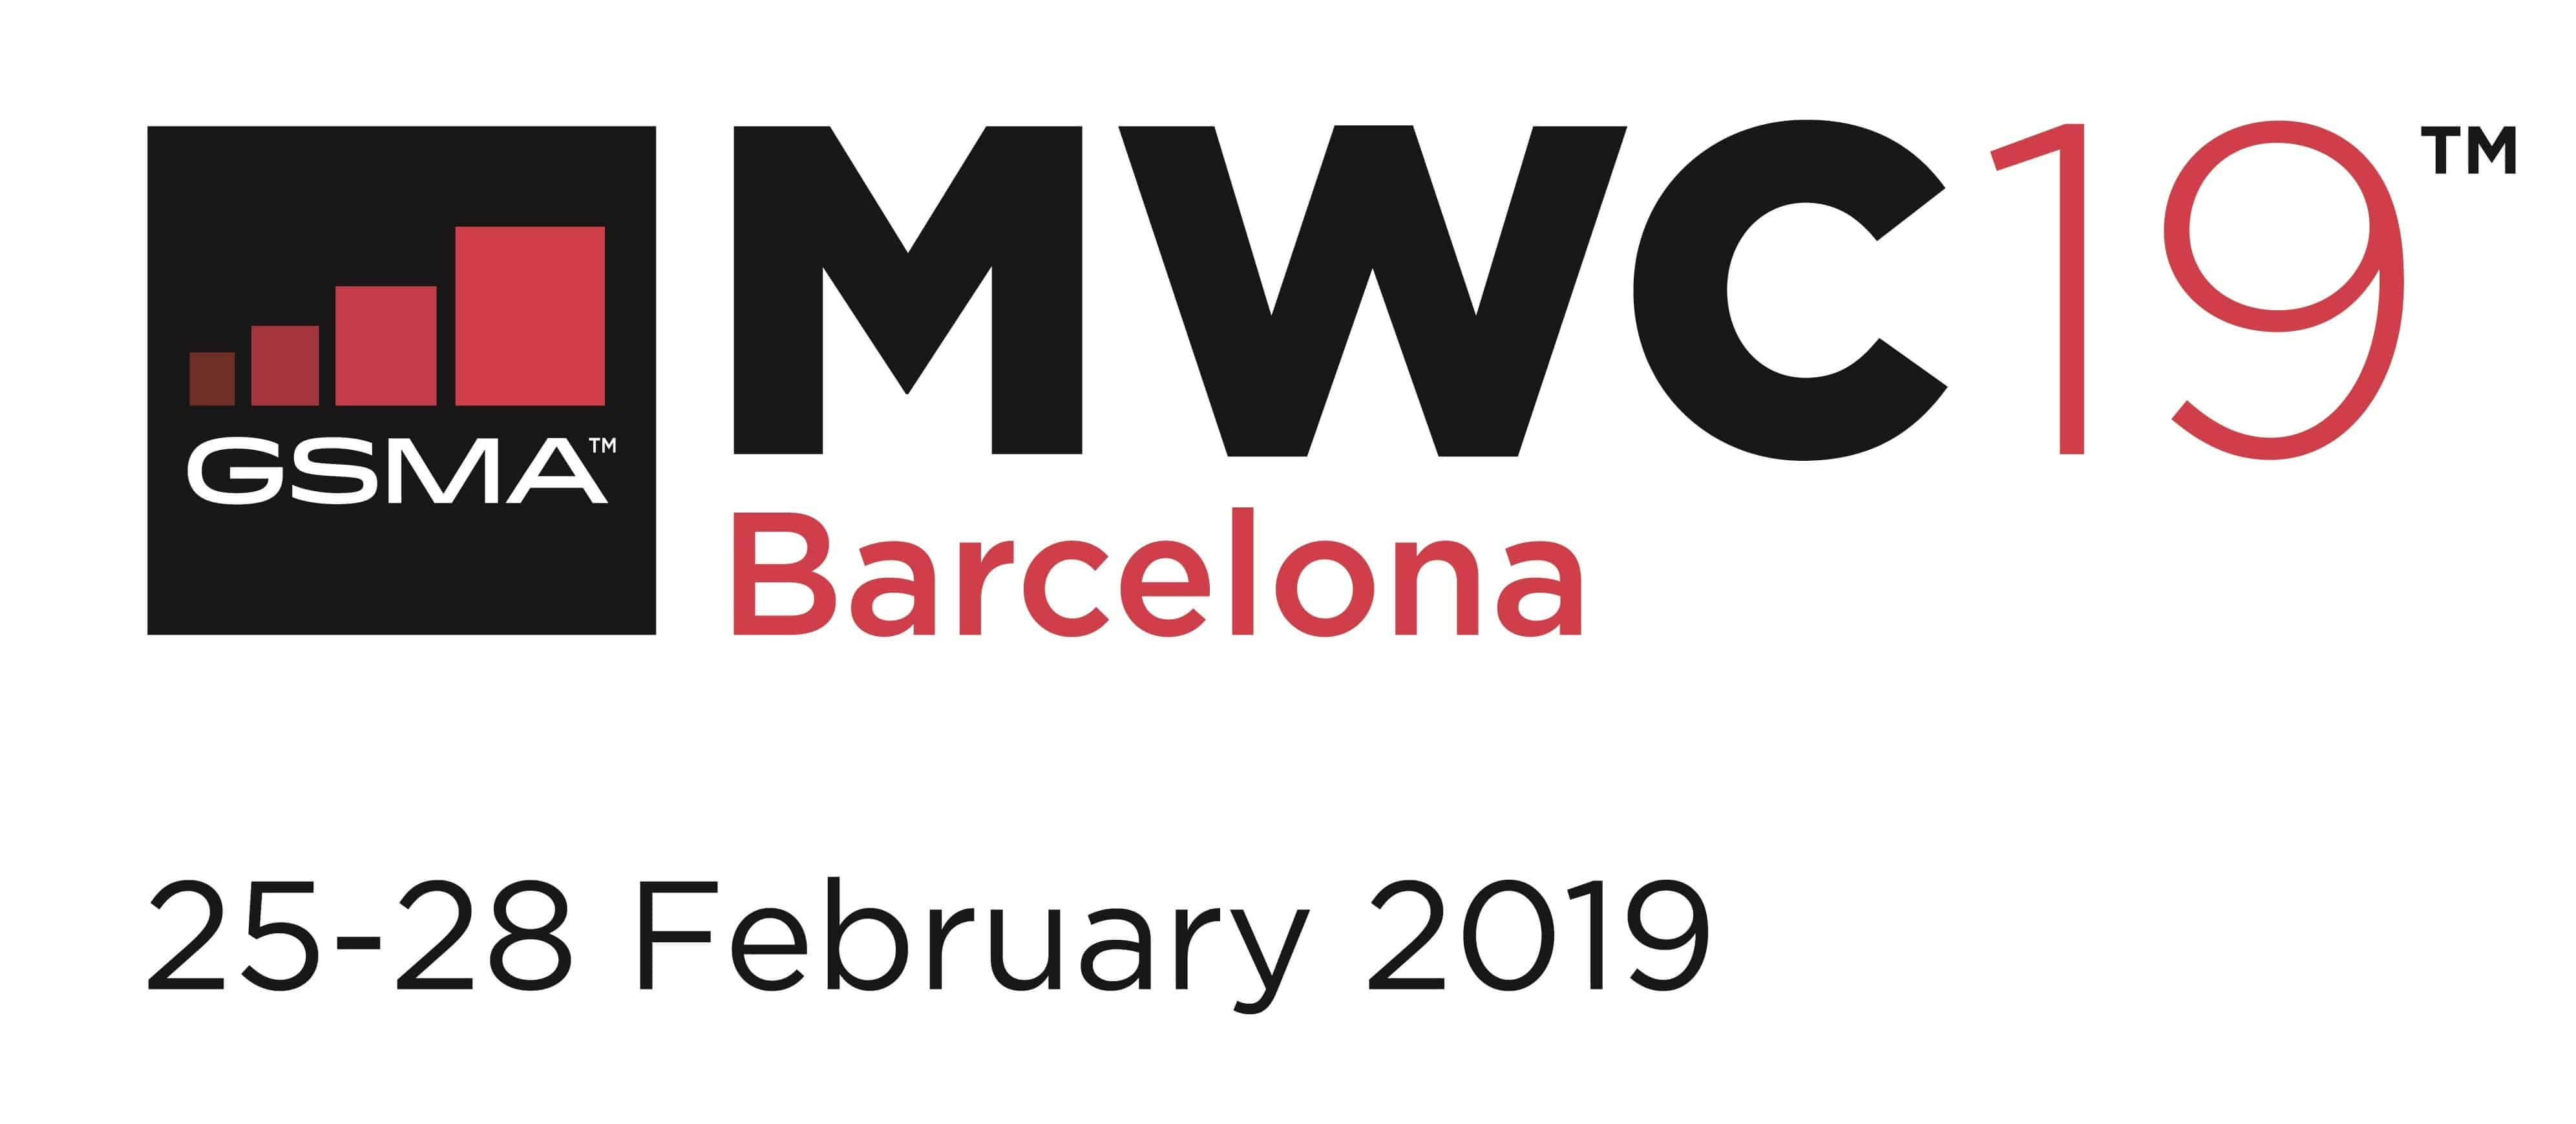 Home Tia Online House Wiring Guide India Mwc19 Barcelona Partner Programme Shaping A Reliable 5g Experience Use Case Smart Buildings